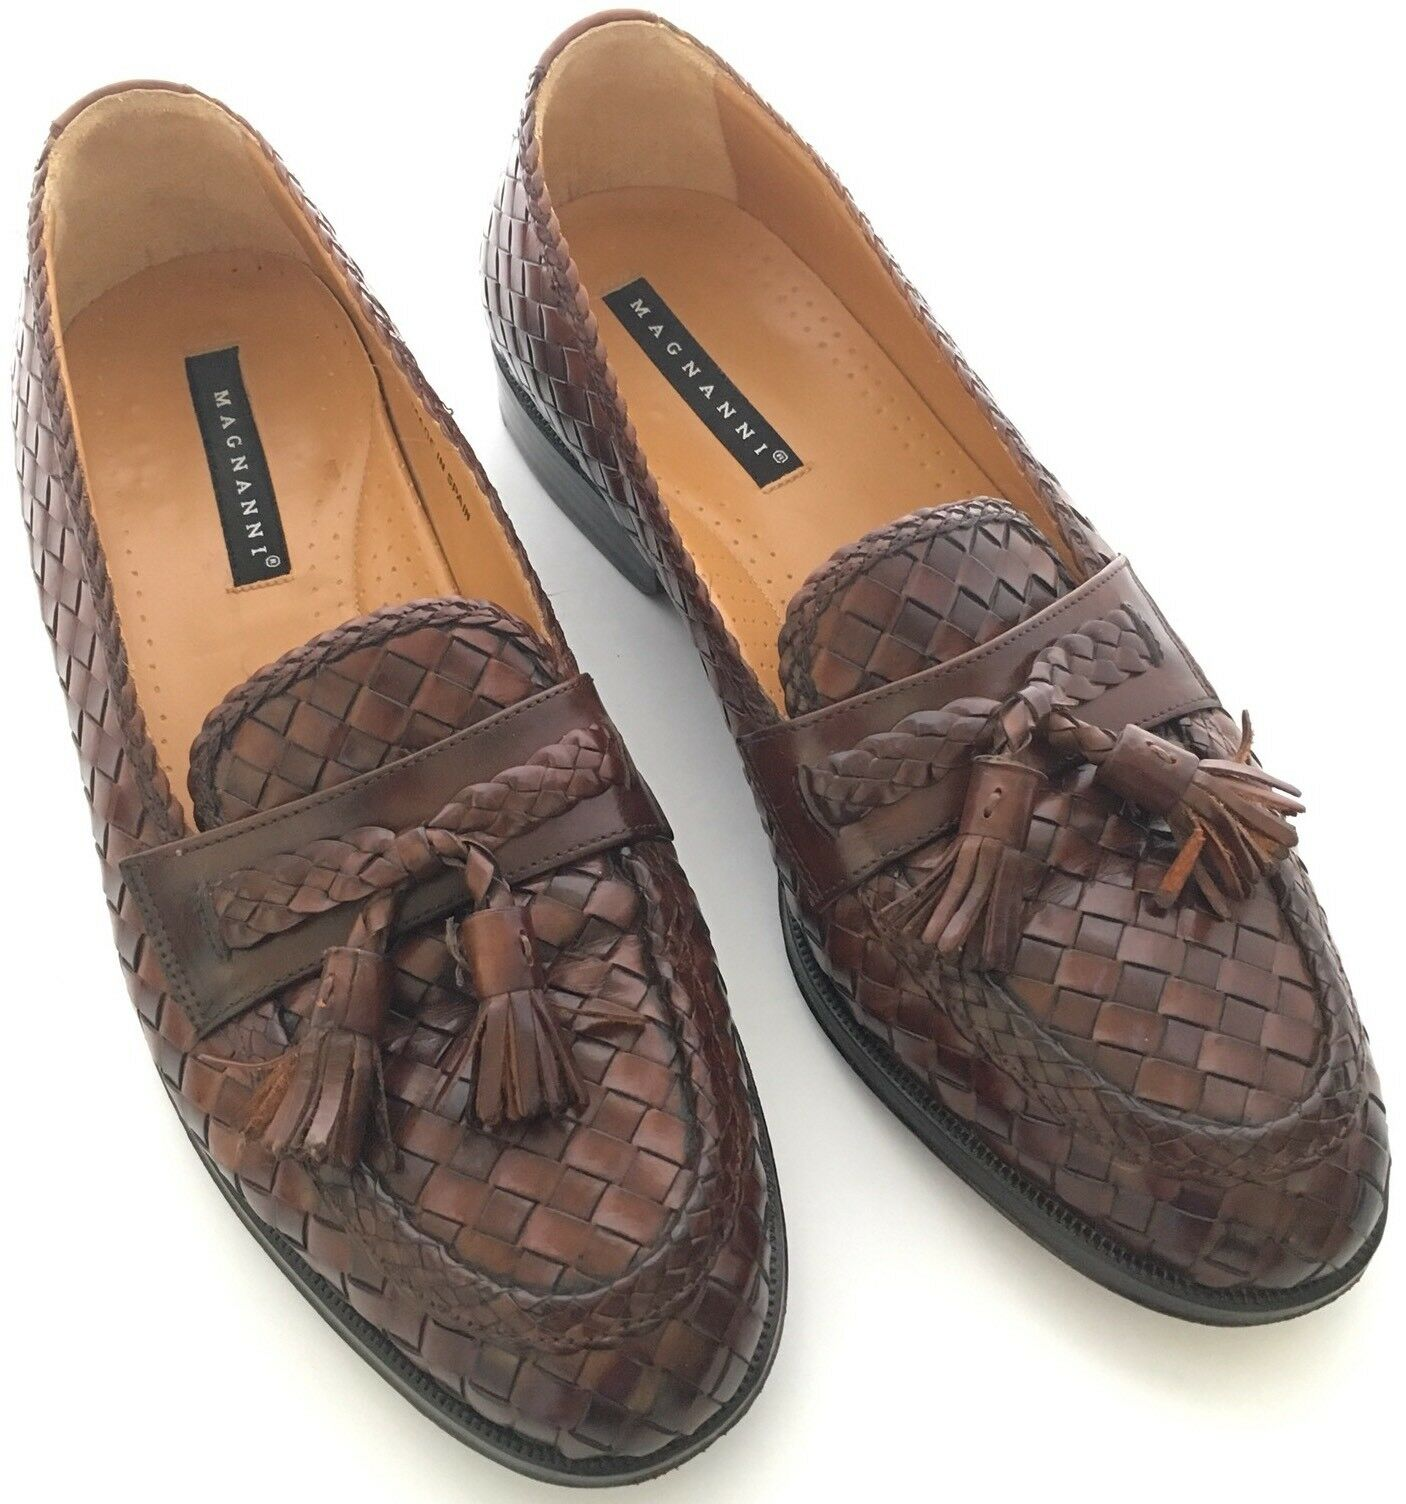 Magnanni Mens Brown Woven Leather Tassel Slip on Loafers size 9 US